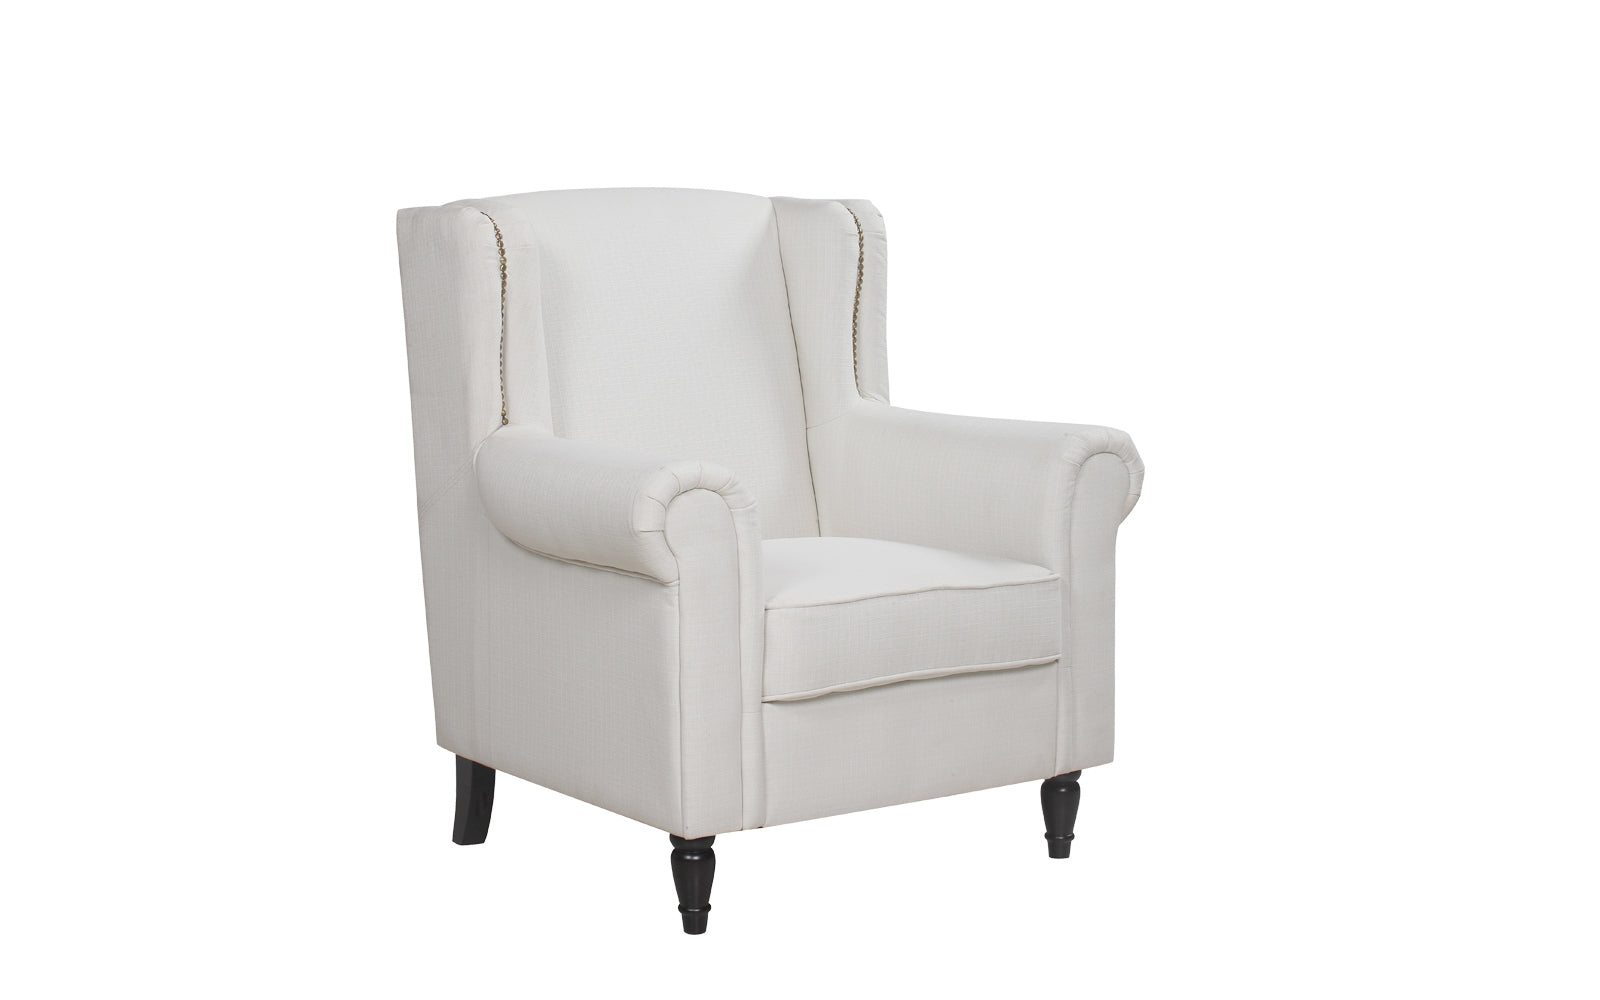 Fantastic Galway Classic Scroll Arm Linen Accent Chair Squirreltailoven Fun Painted Chair Ideas Images Squirreltailovenorg